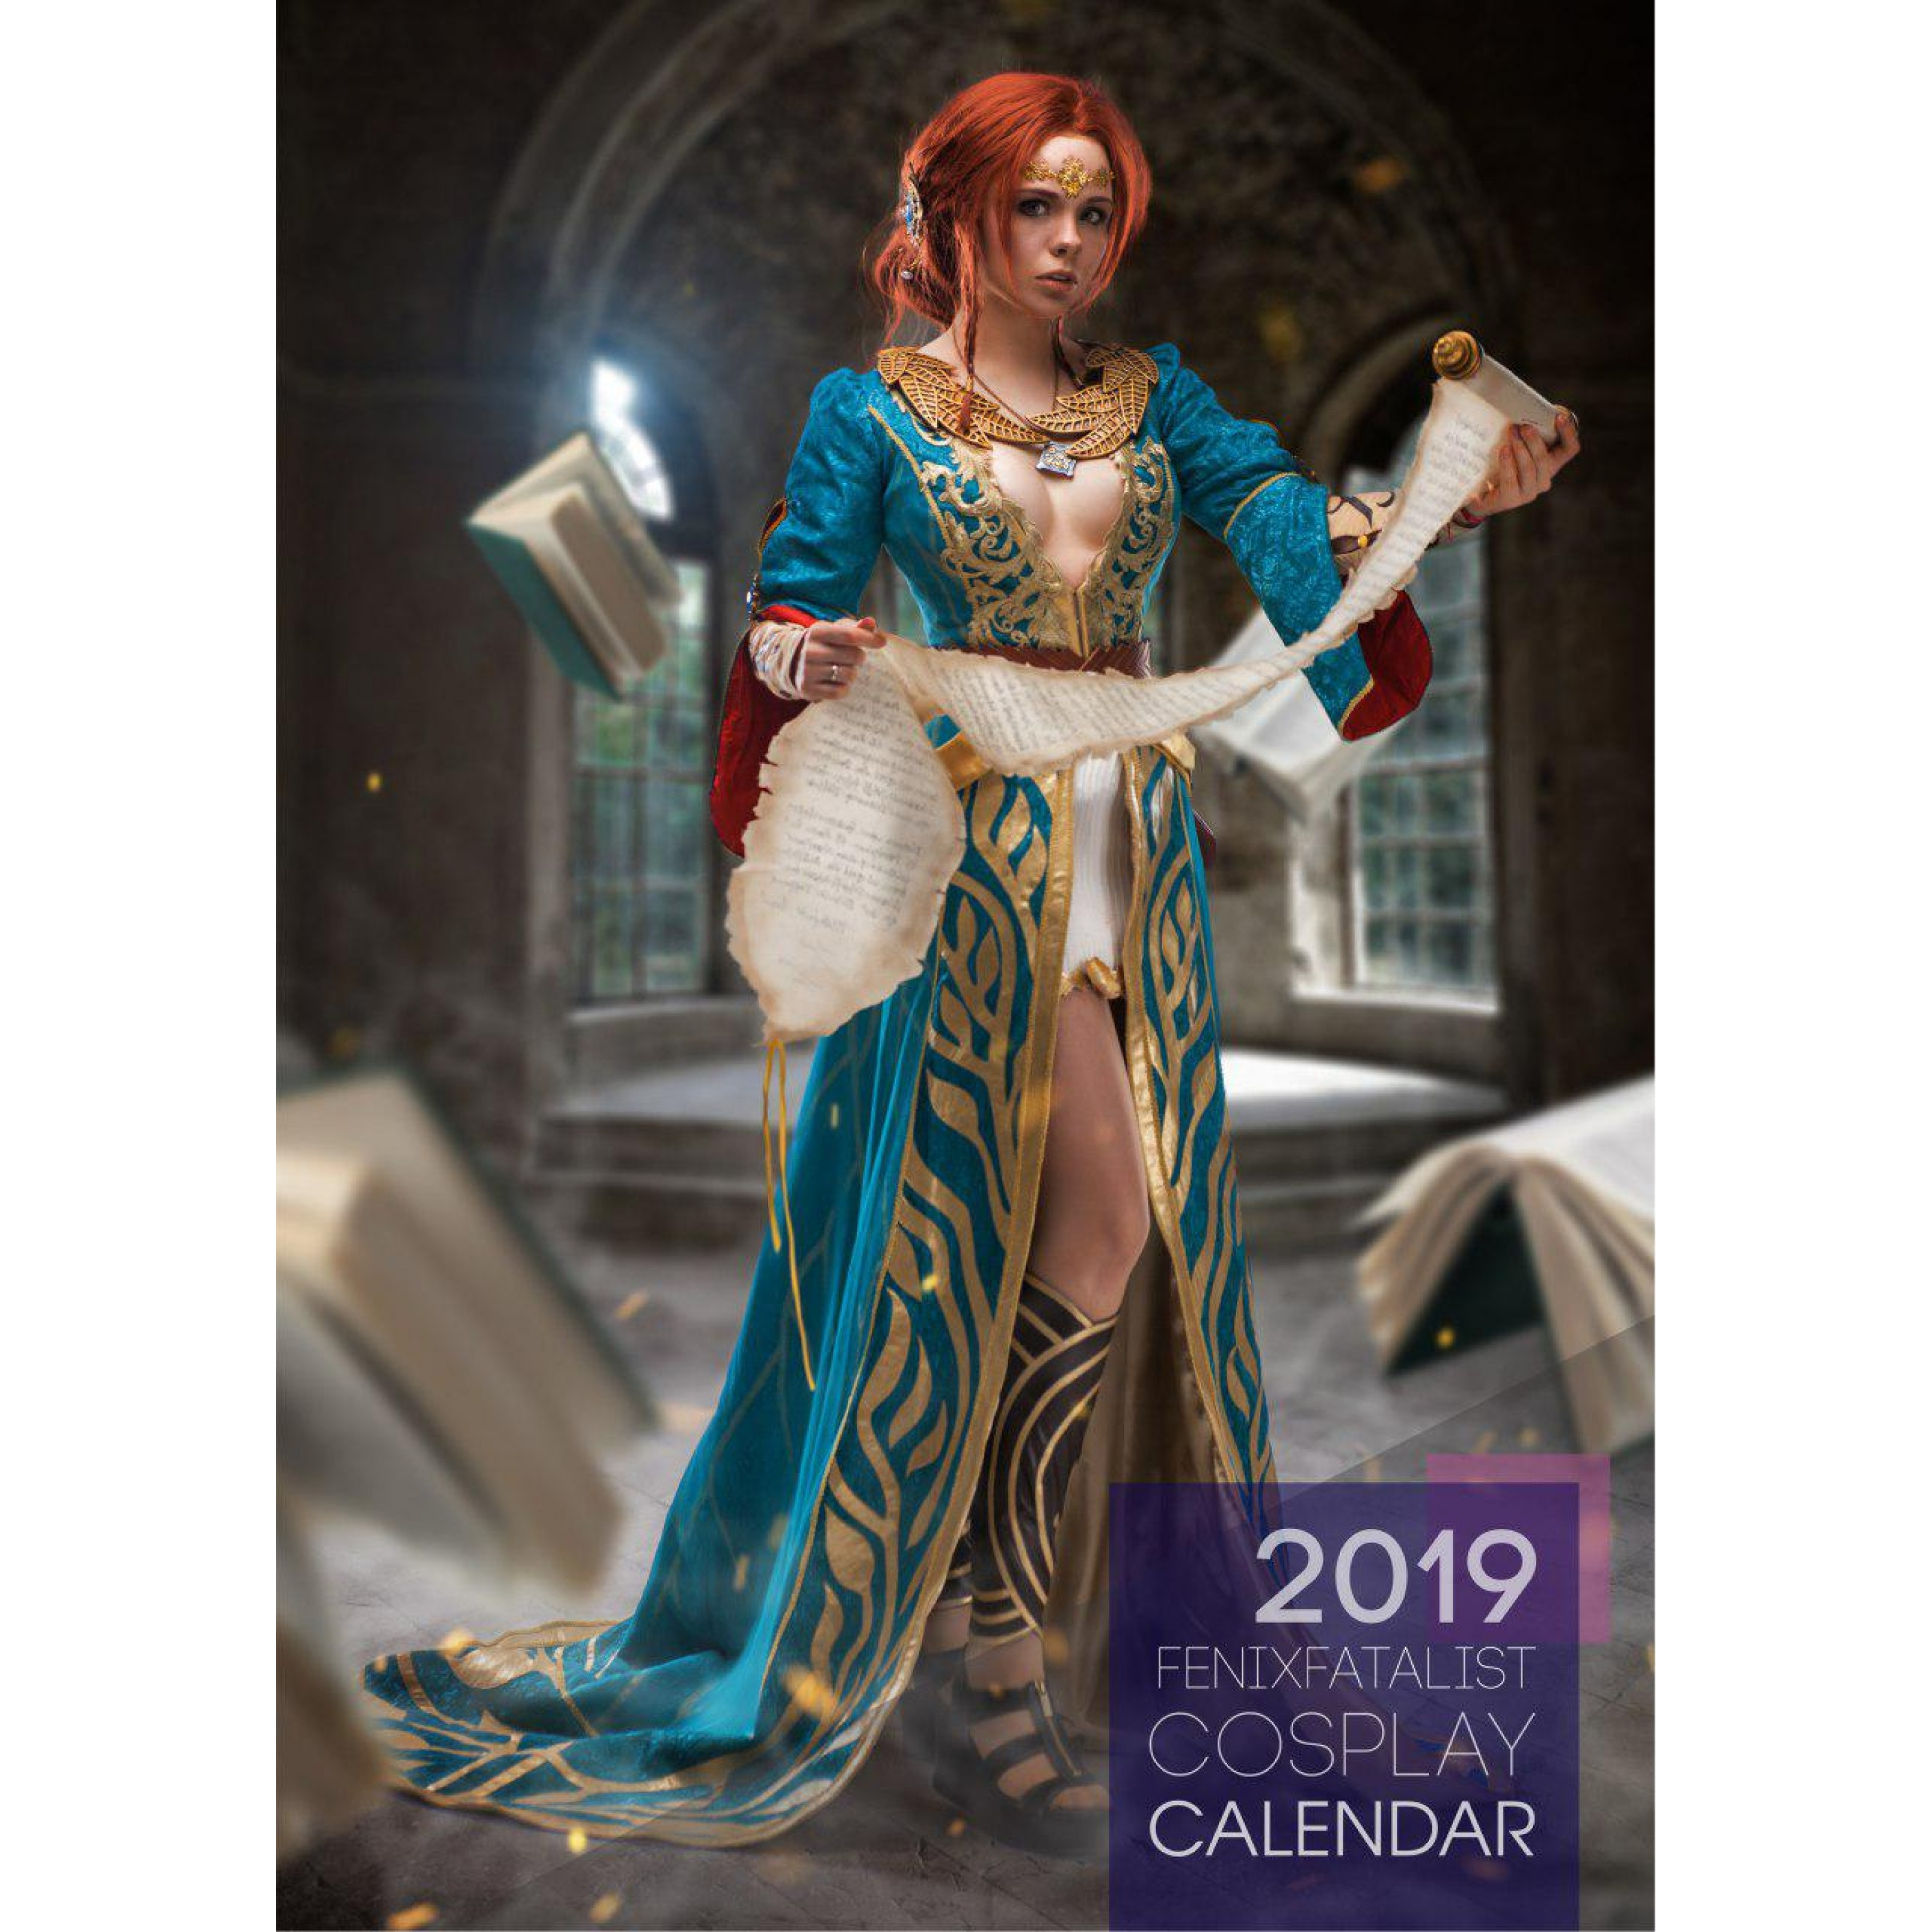 Fenix Fatalist Limited Cosplay Calendar 2019 In Stock